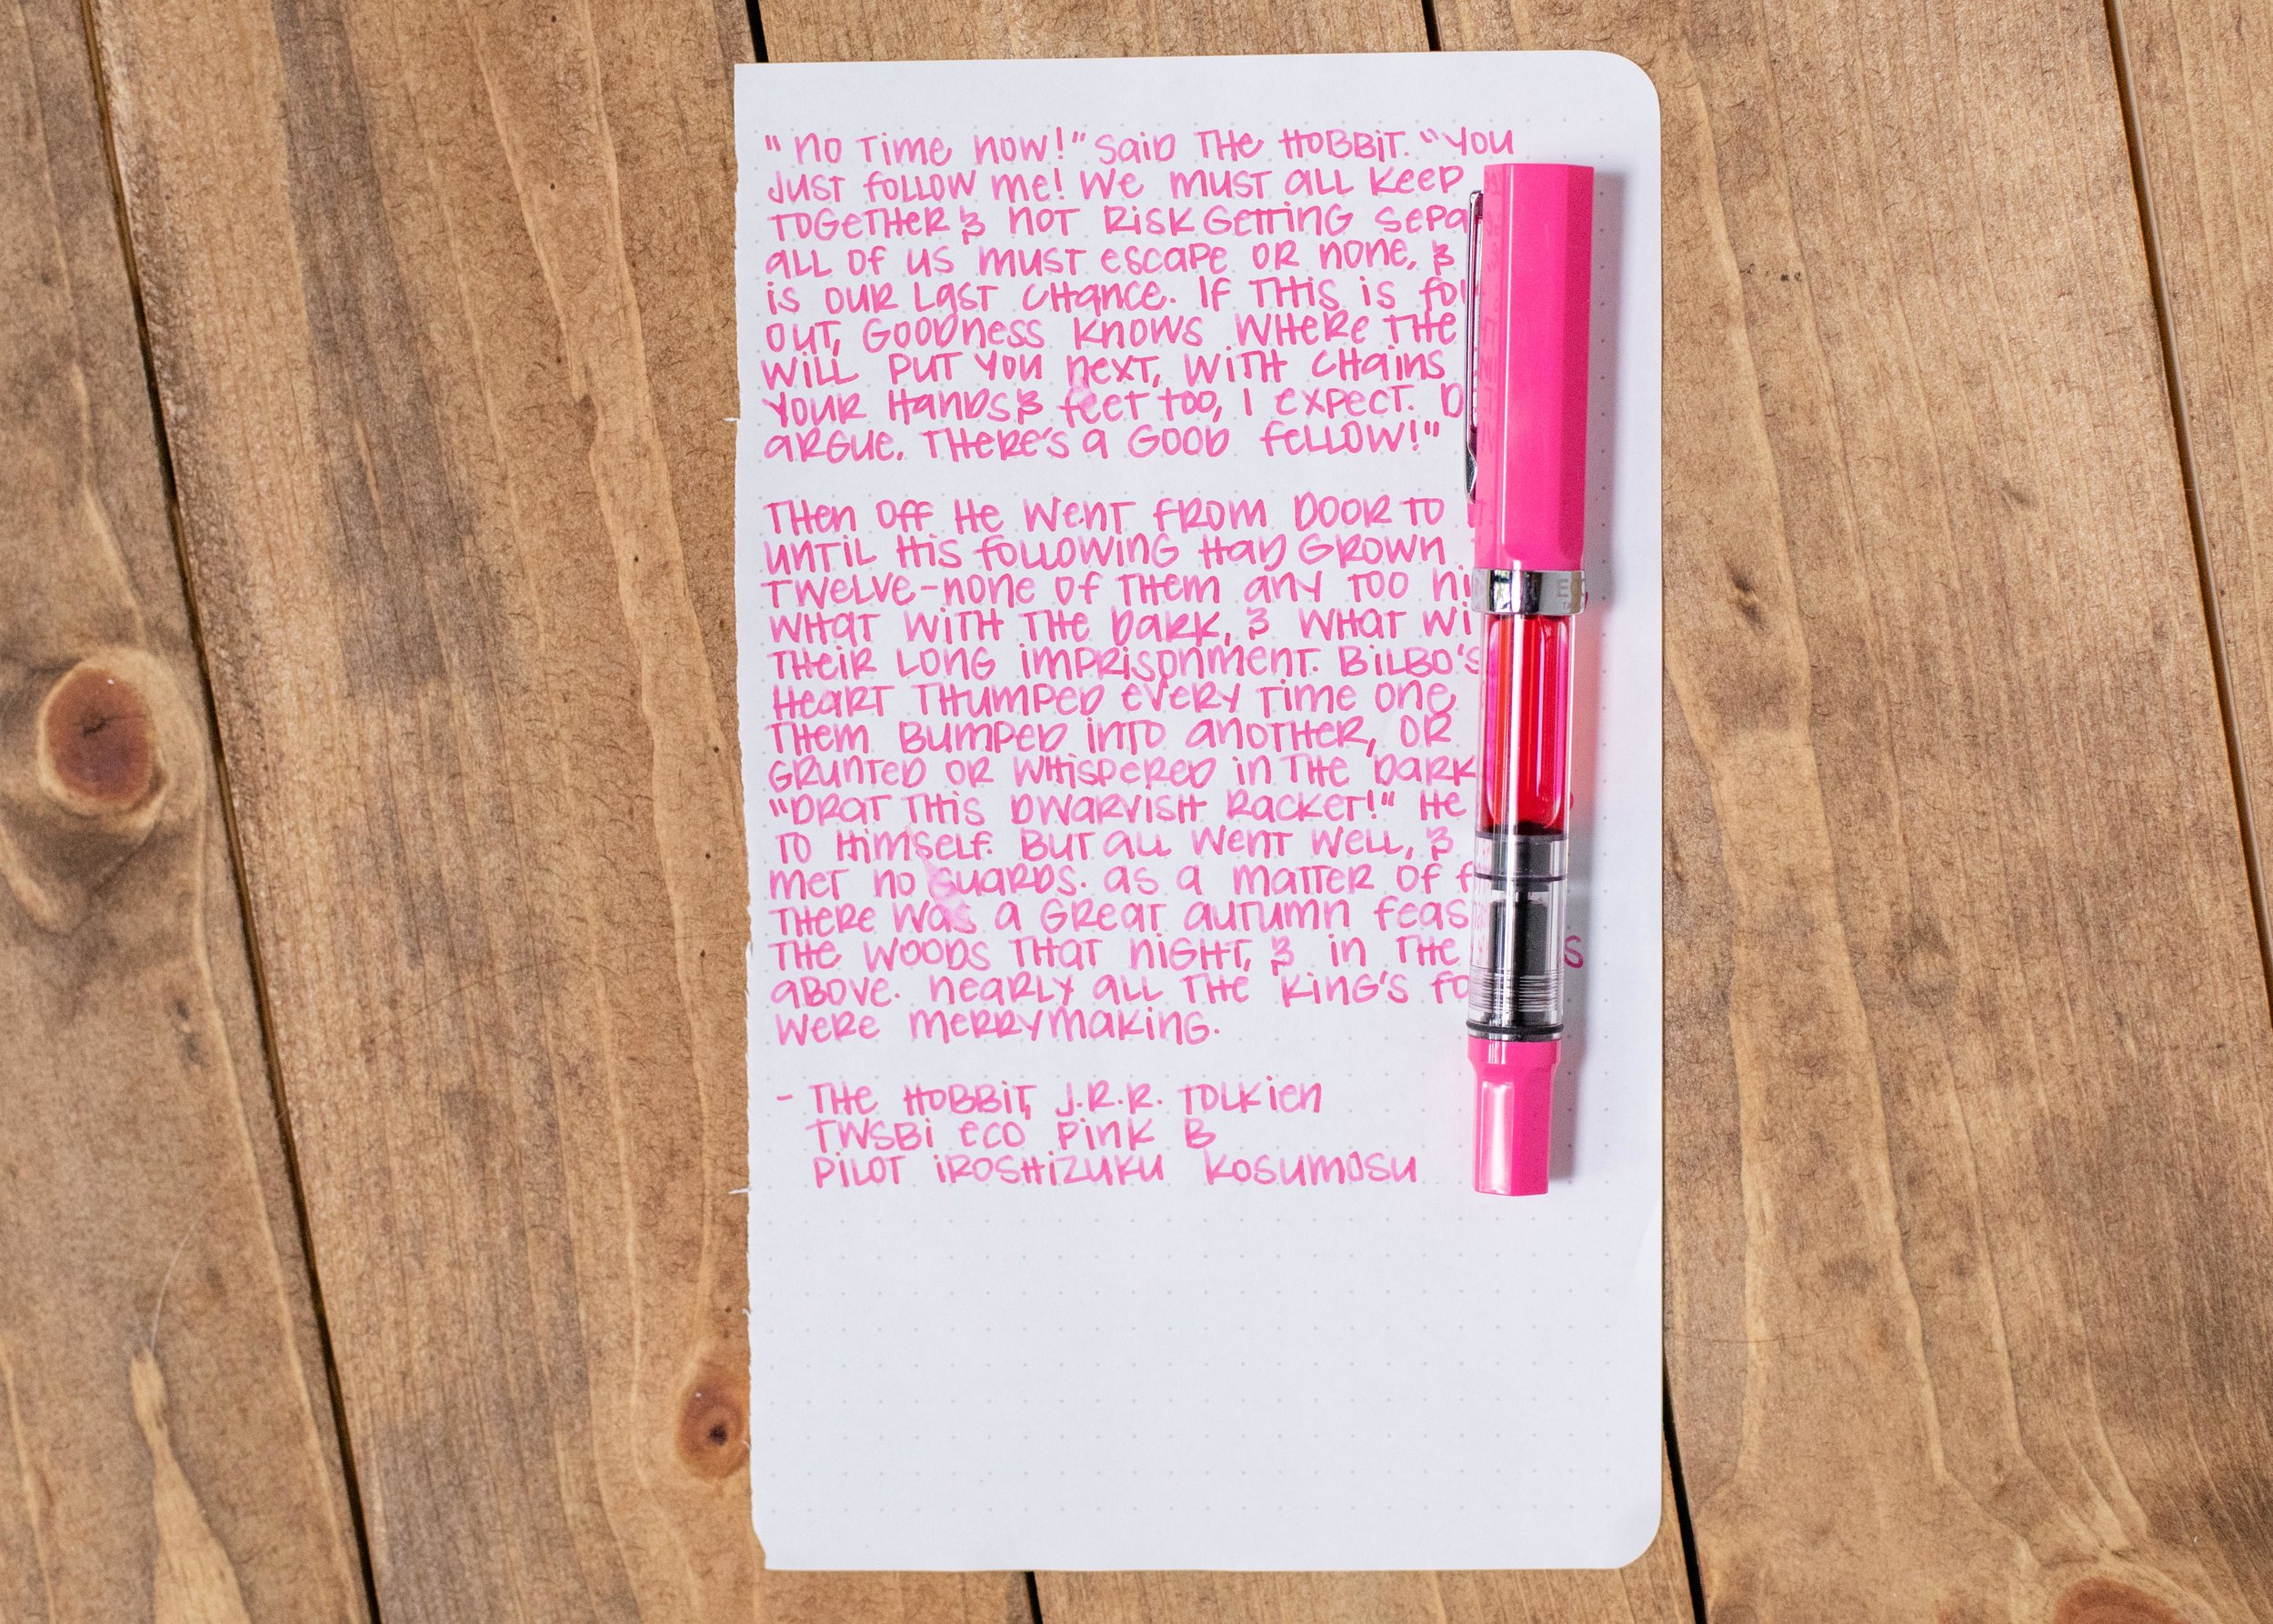 I used a broad Twsbi Eco Pink on Tomoe River 68. The ink had a wet flow. This ink matches the pen really well.